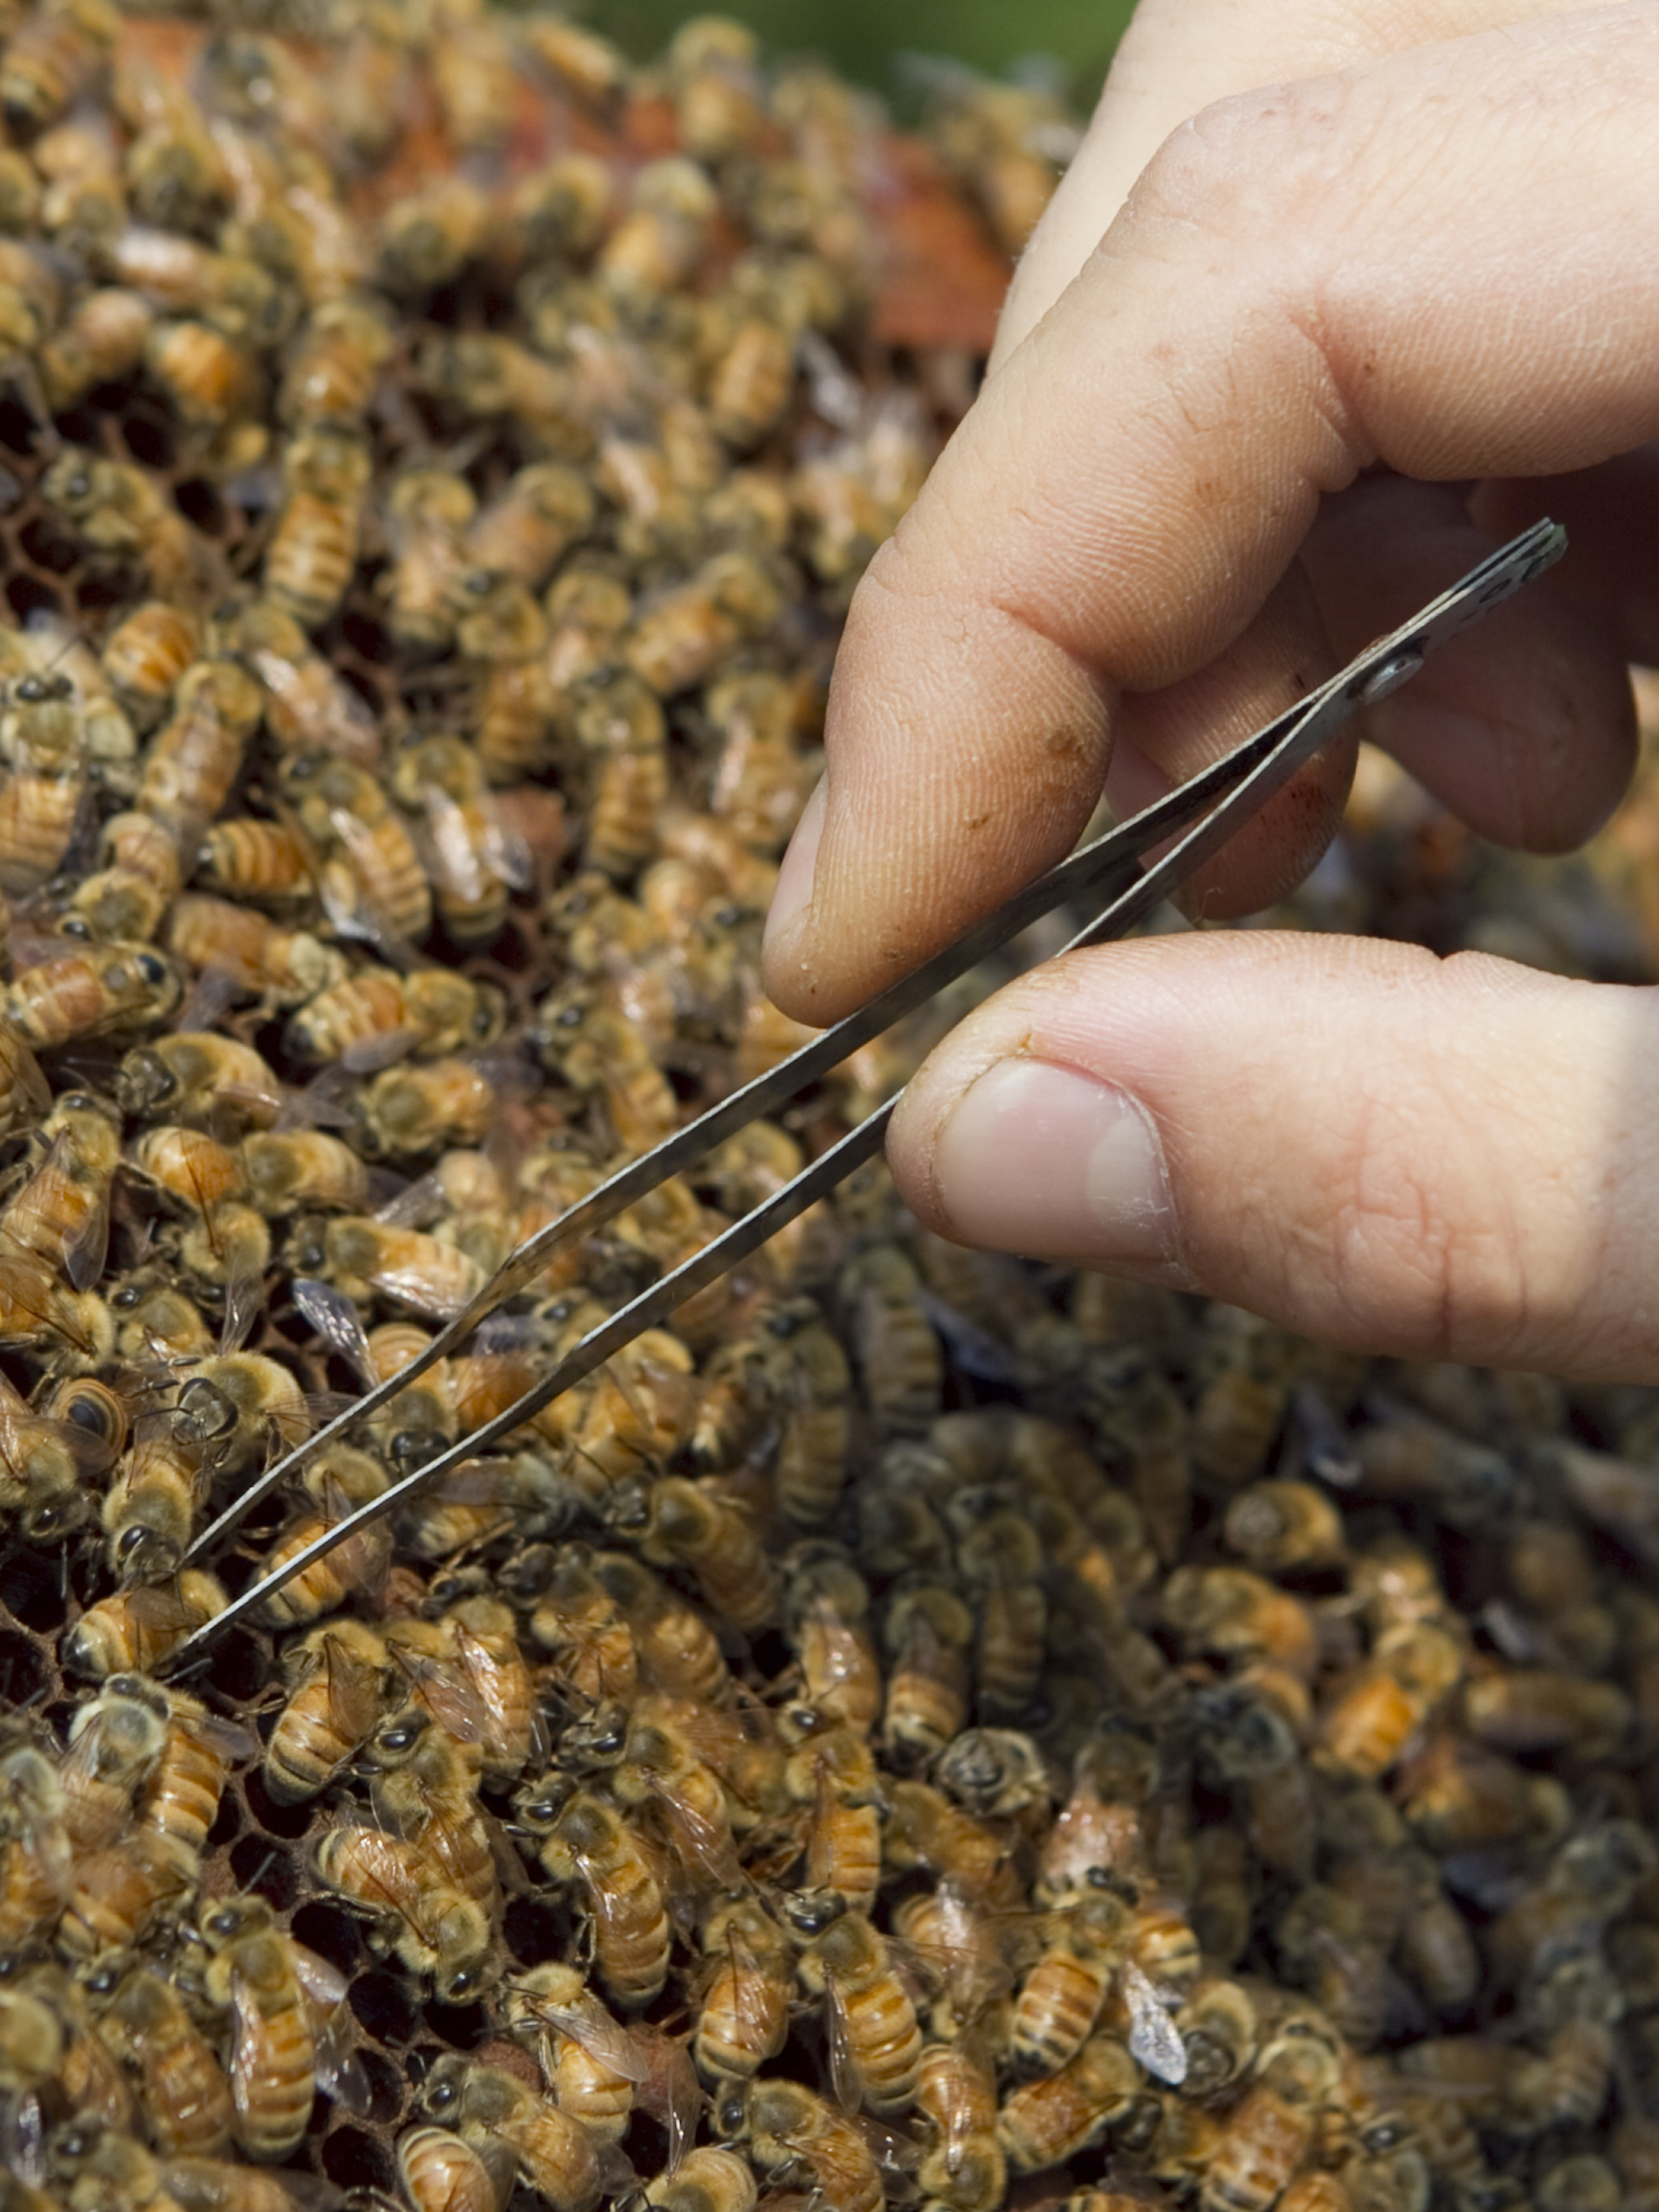 CORVALLIS, OR - AUGUST 5:  An Oregon State University bee researcher collects 'nurse bees' in a hive outside on August 5, 2014 in Corvallis, Oregon. After taking a sample, the researchers analyze the bee blood to determine the effects of pesticides do their the bee's immune systems. The research could be useful in determining if why large number of bees have been dying recently. (Photo by Natalie Behring/Getty Images)